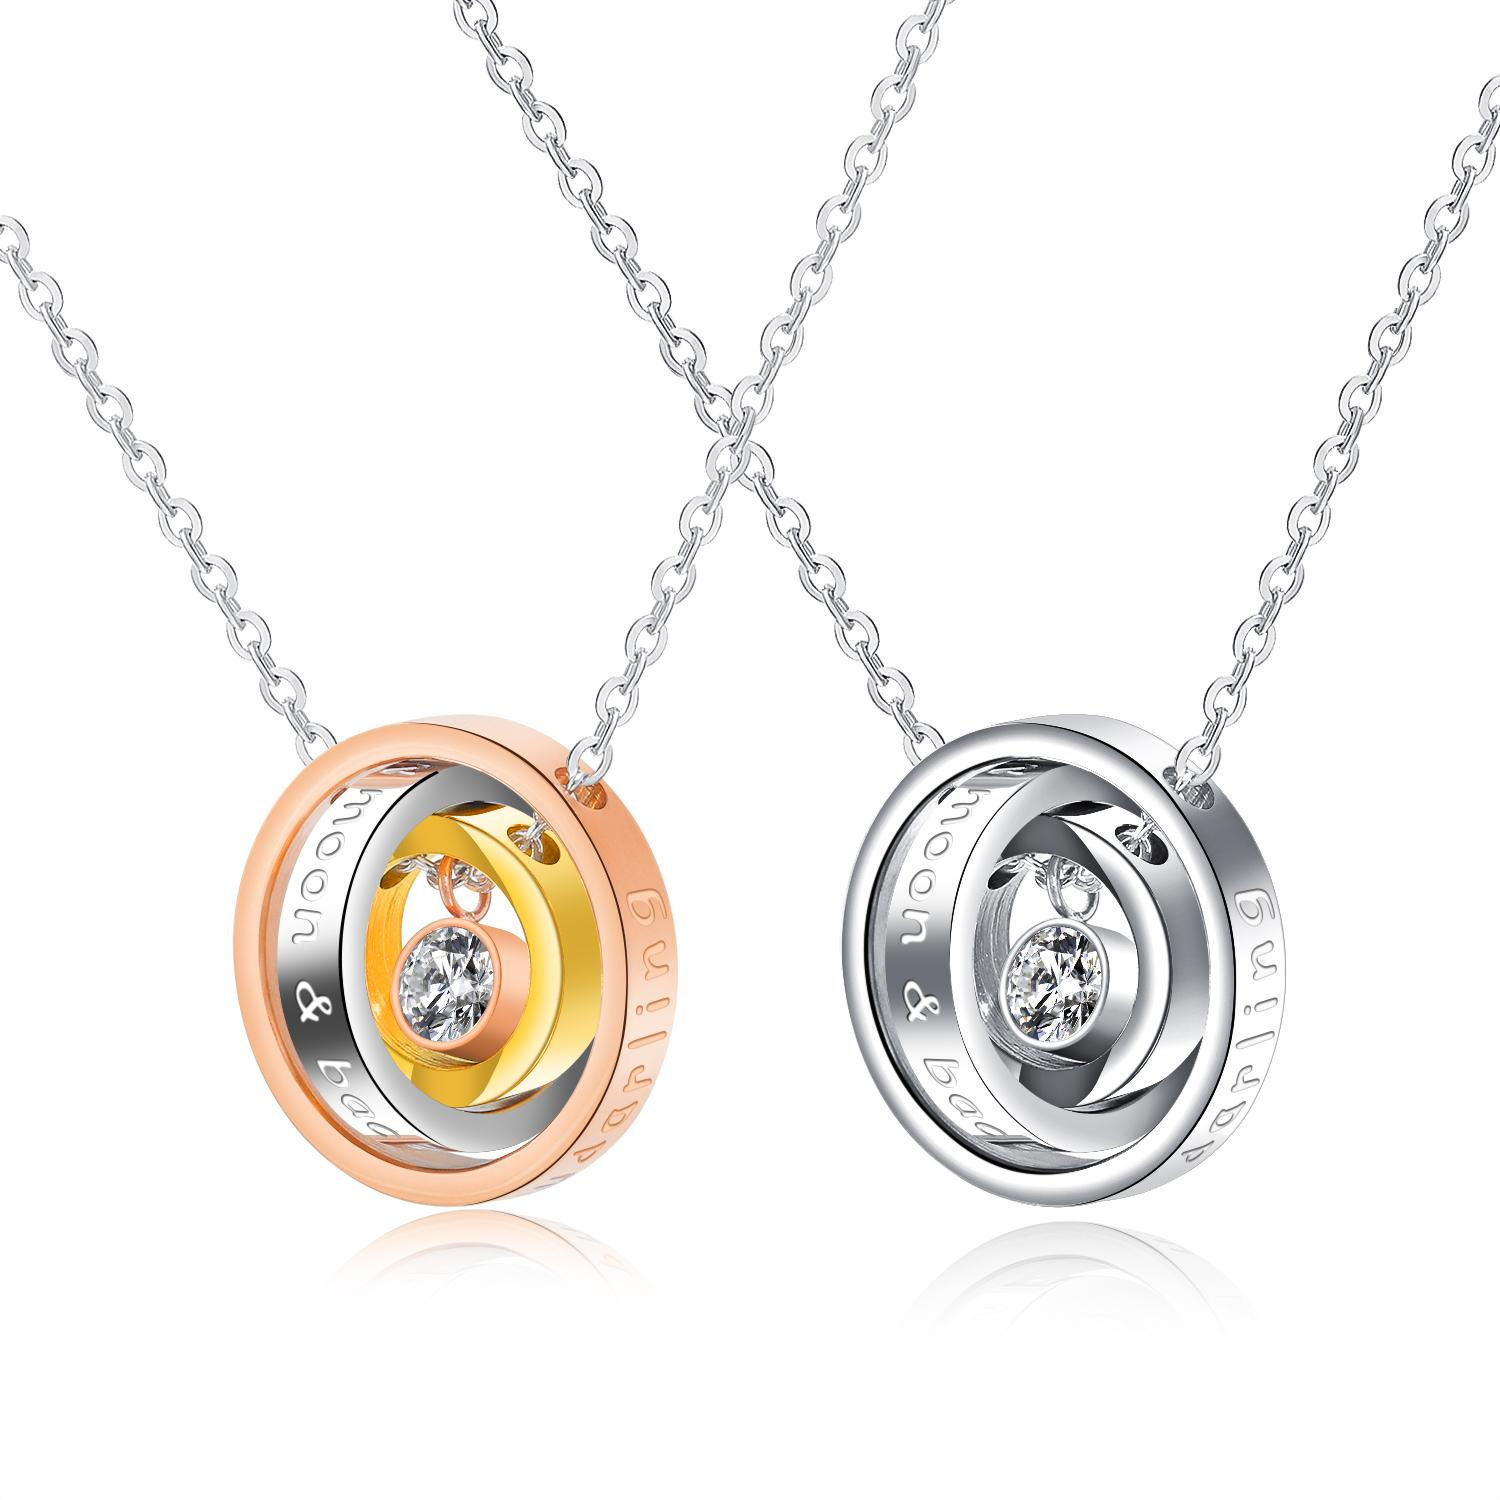 b20ae8887 Wholesale I Love You Darling His/Hers Promise Love Pendant Stainless Steel  Halo Ring Necklace K3748 Silver Necklaces Diamond Necklaces From Sherity,  ...